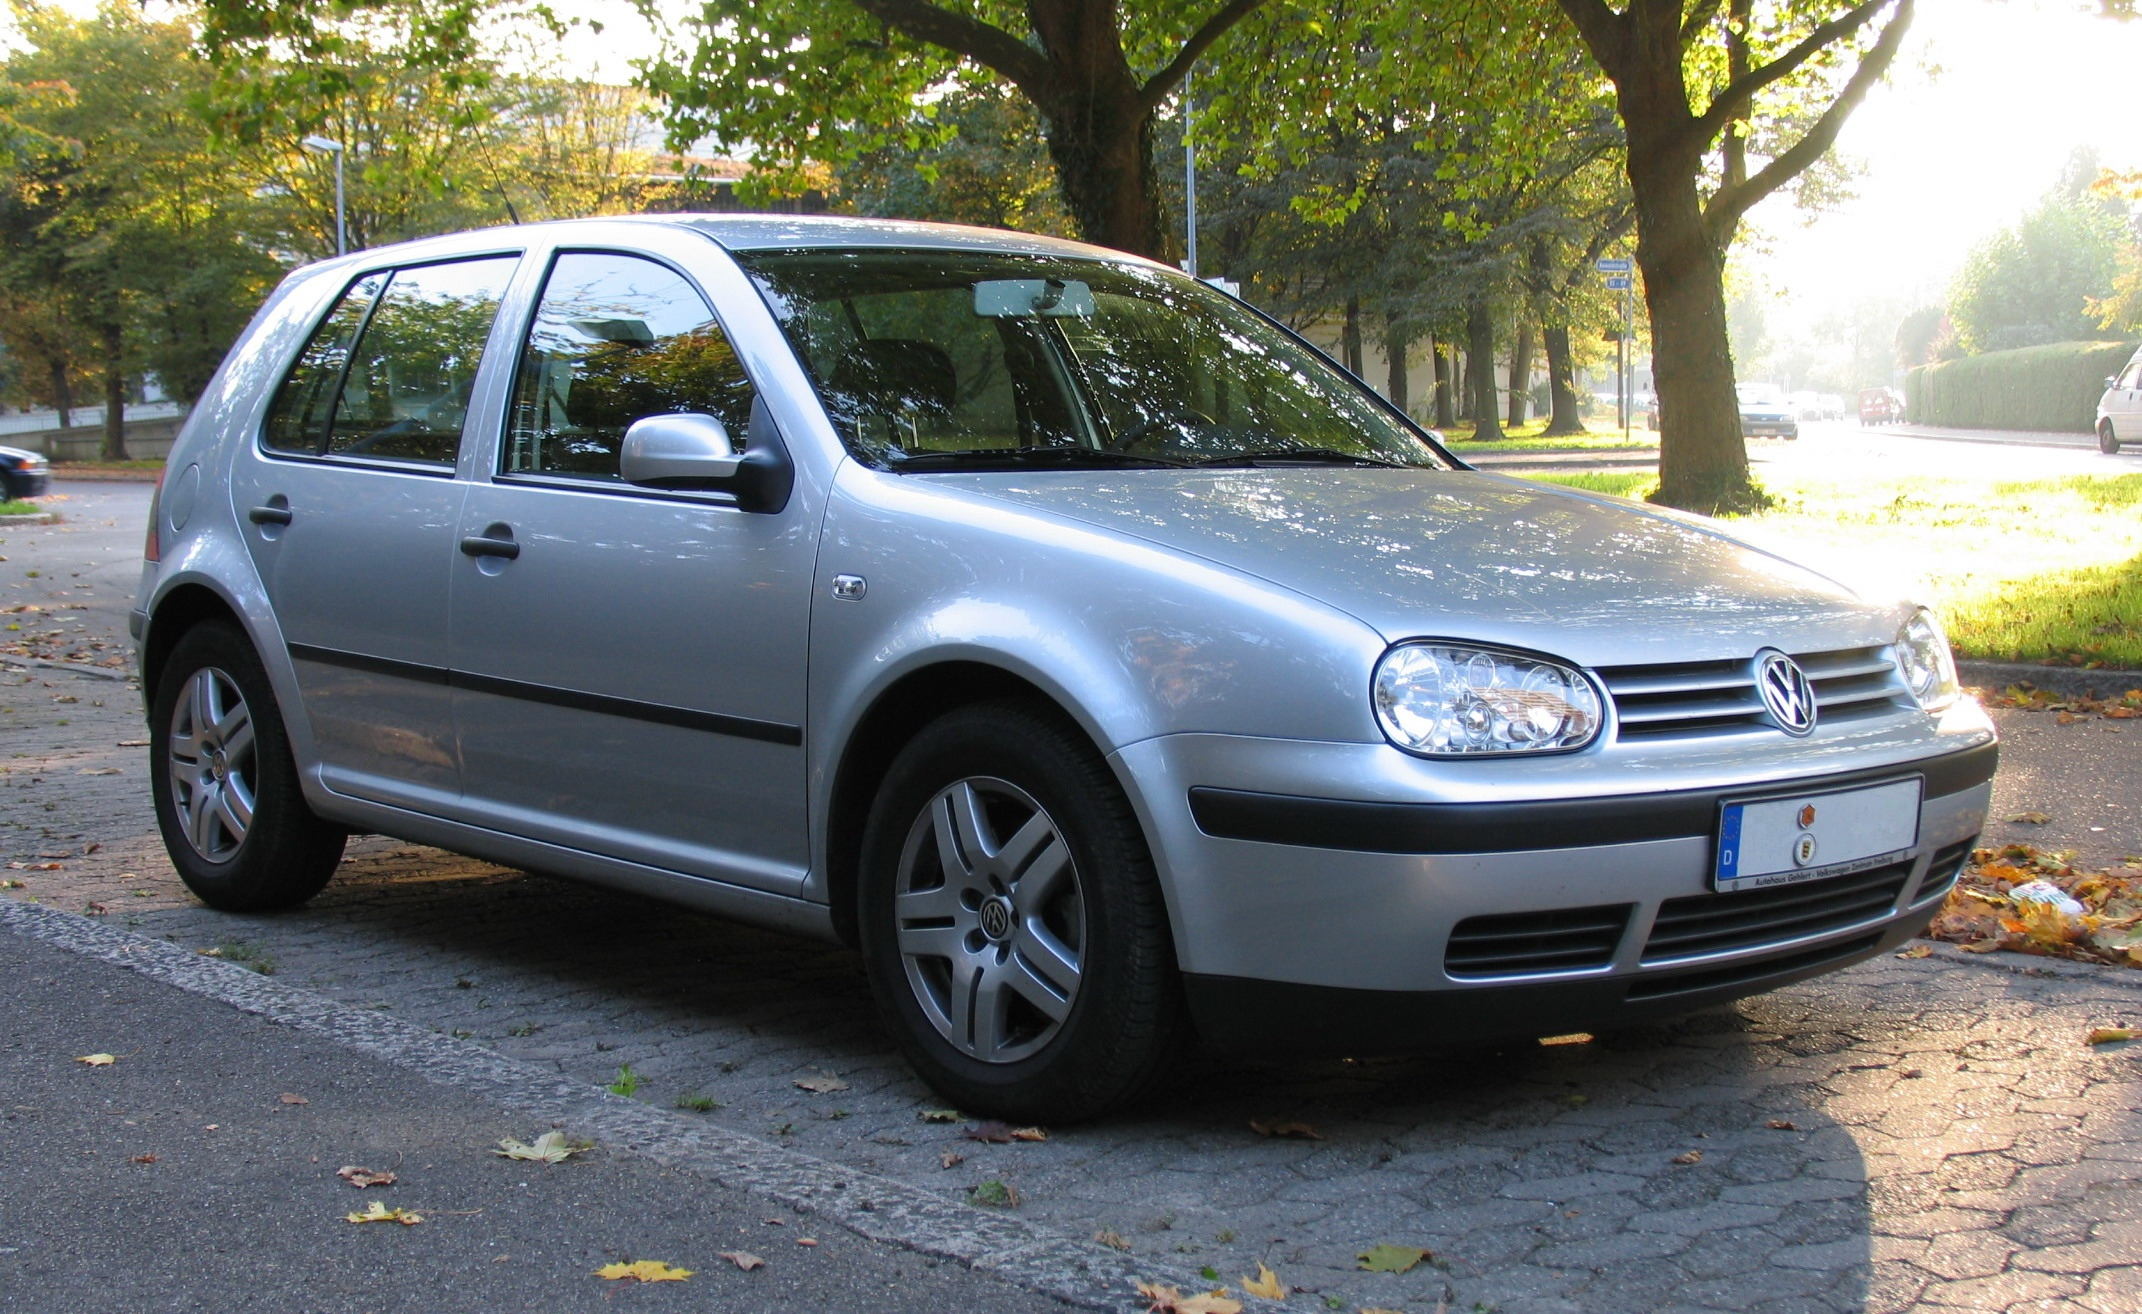 VW Golf 4 photo 19